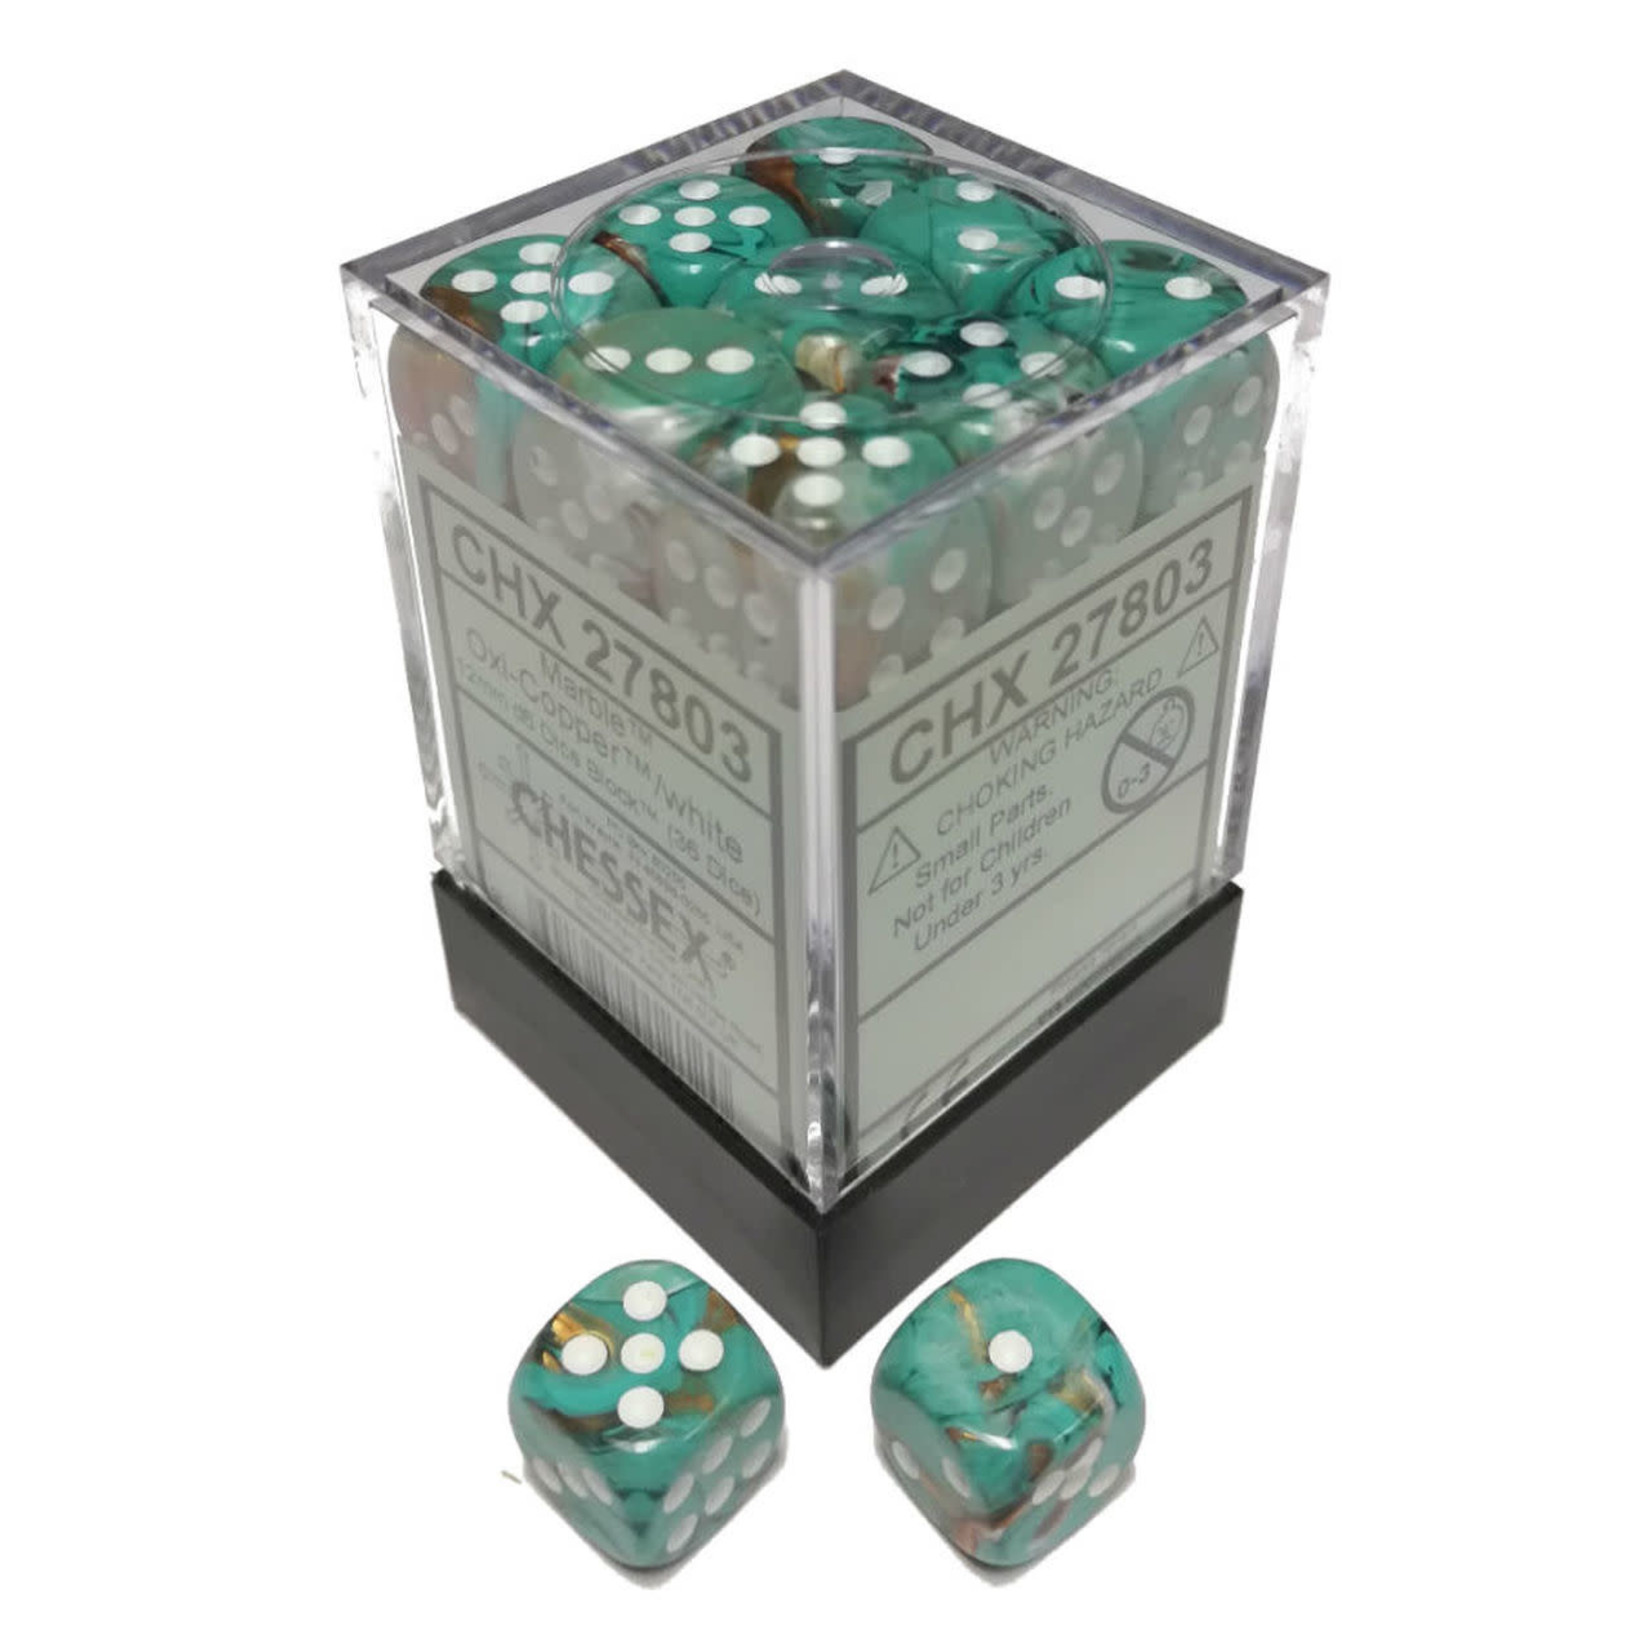 Dice Menagerie 10 12mm D6 Marble Oxi Copper